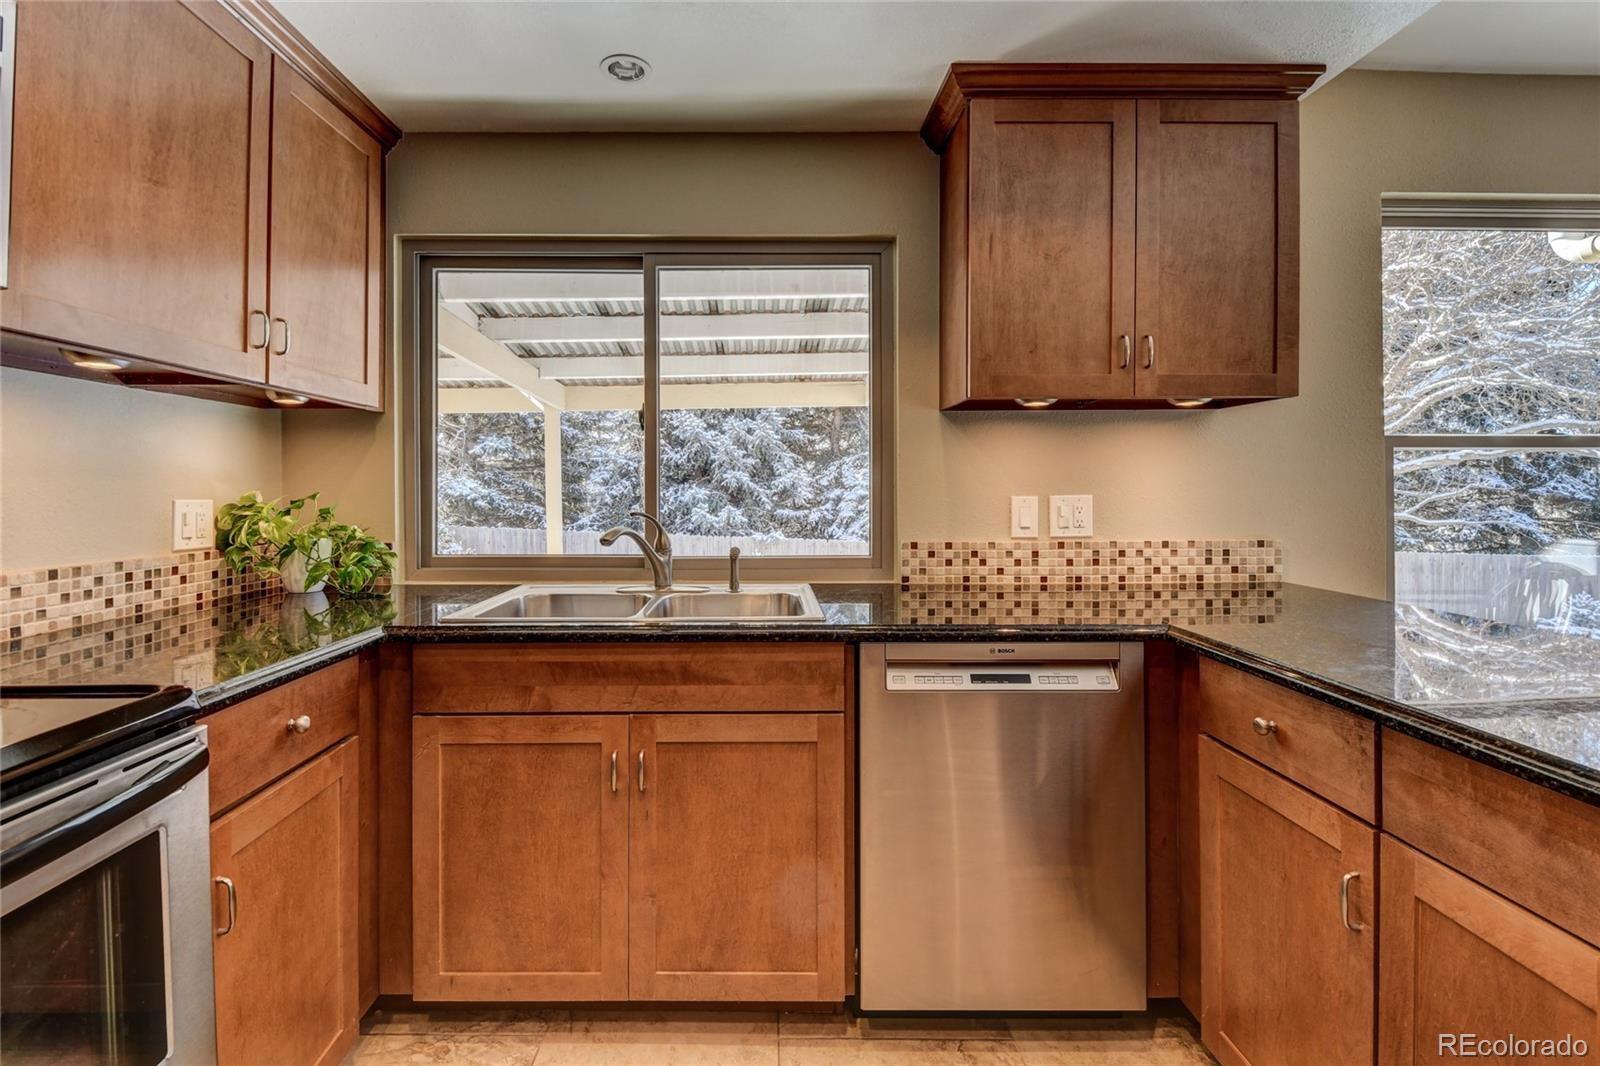 MLS# 9798515 - 17 - 5830 E Caley Drive, Centennial, CO 80111